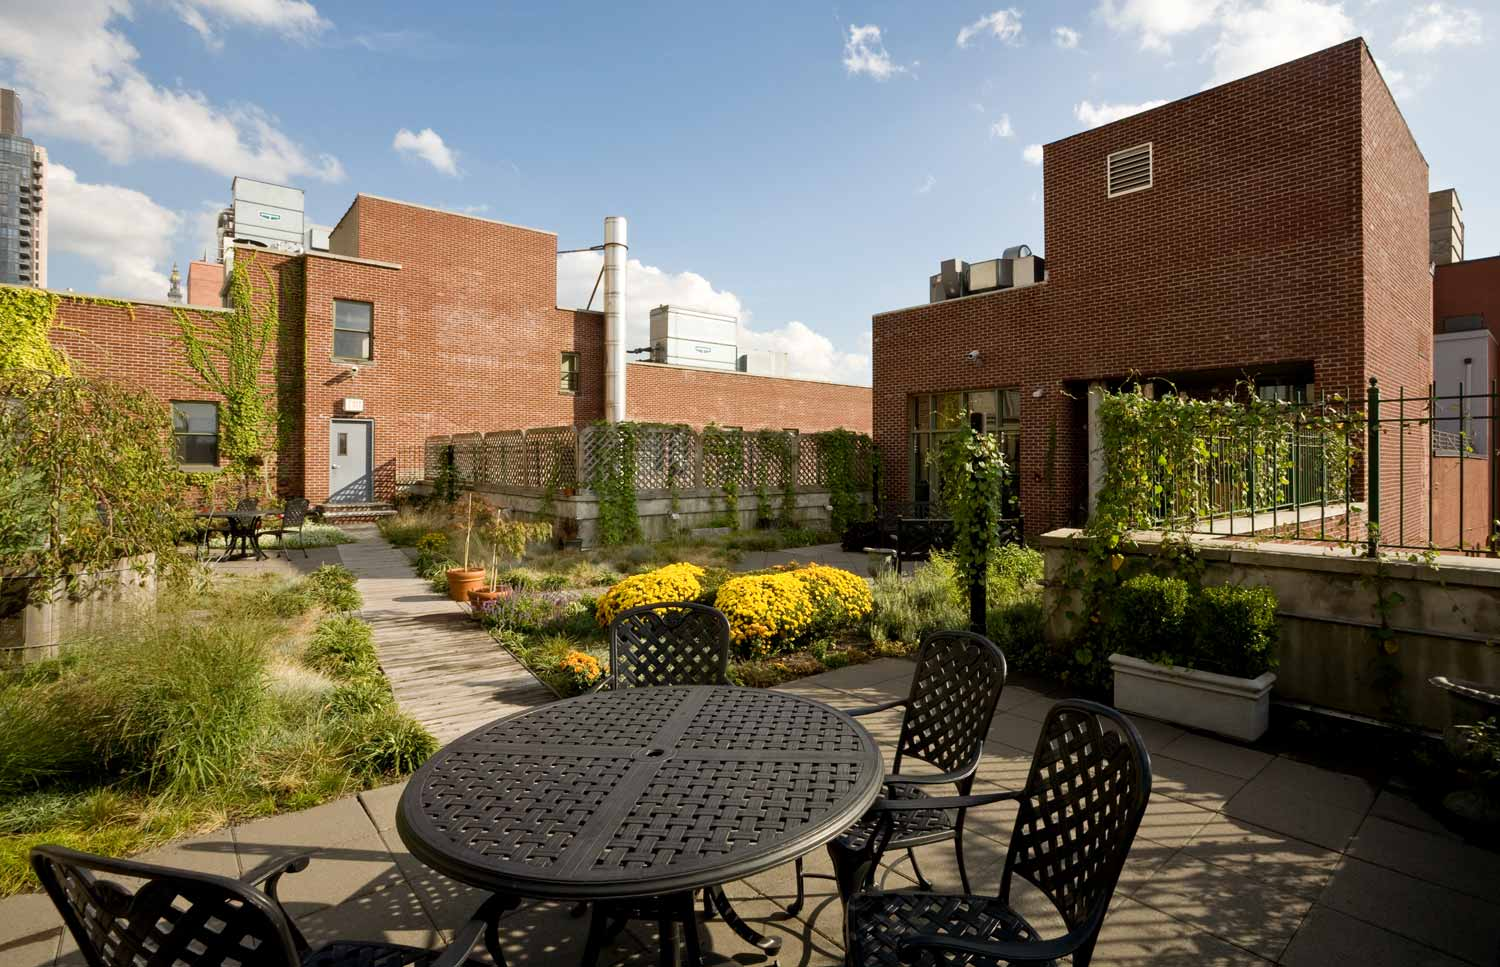 The green roof is one of the first of it's kind for supportive housing in NYC.